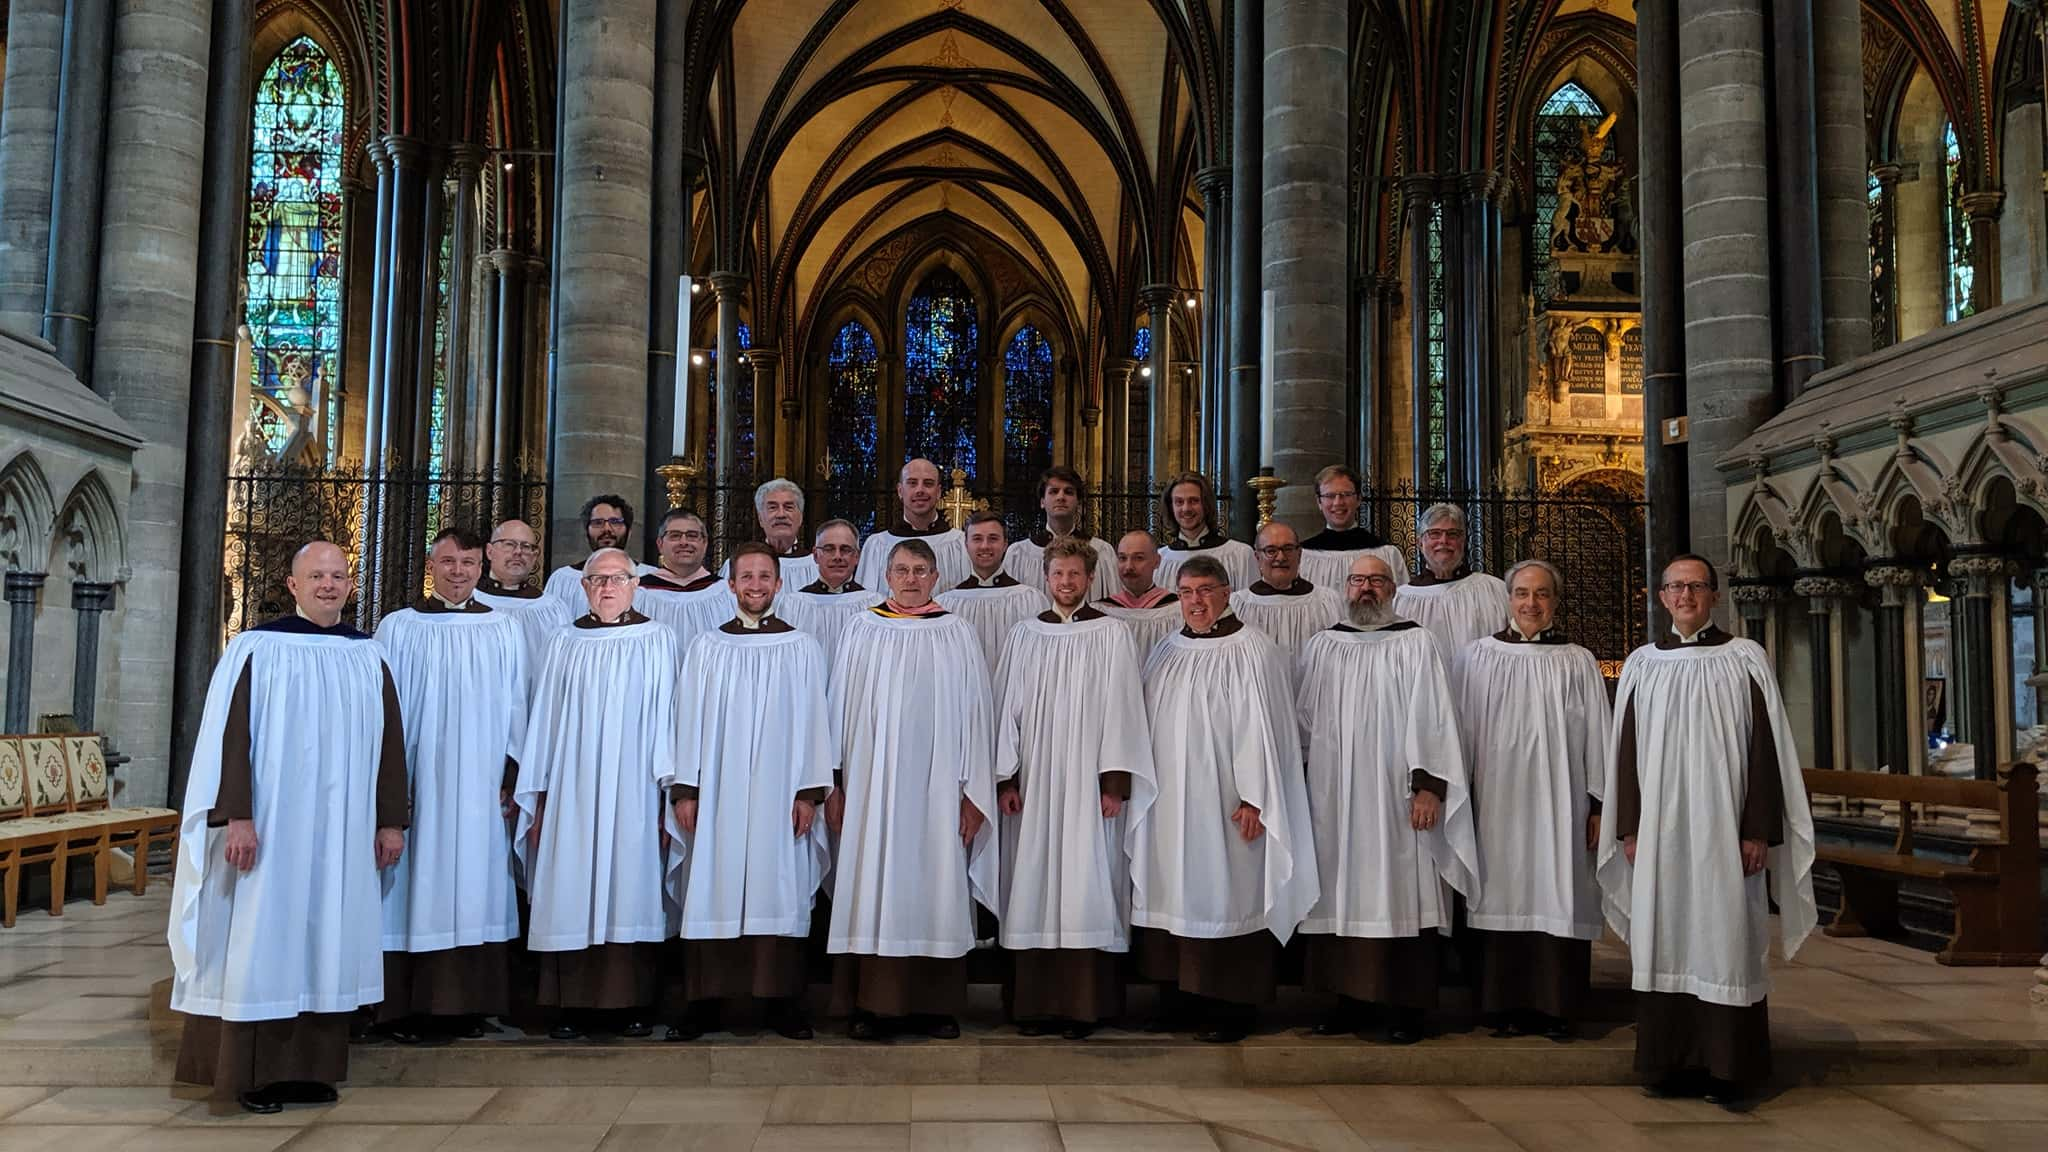 Church choir in white robes inside of a large cathedral